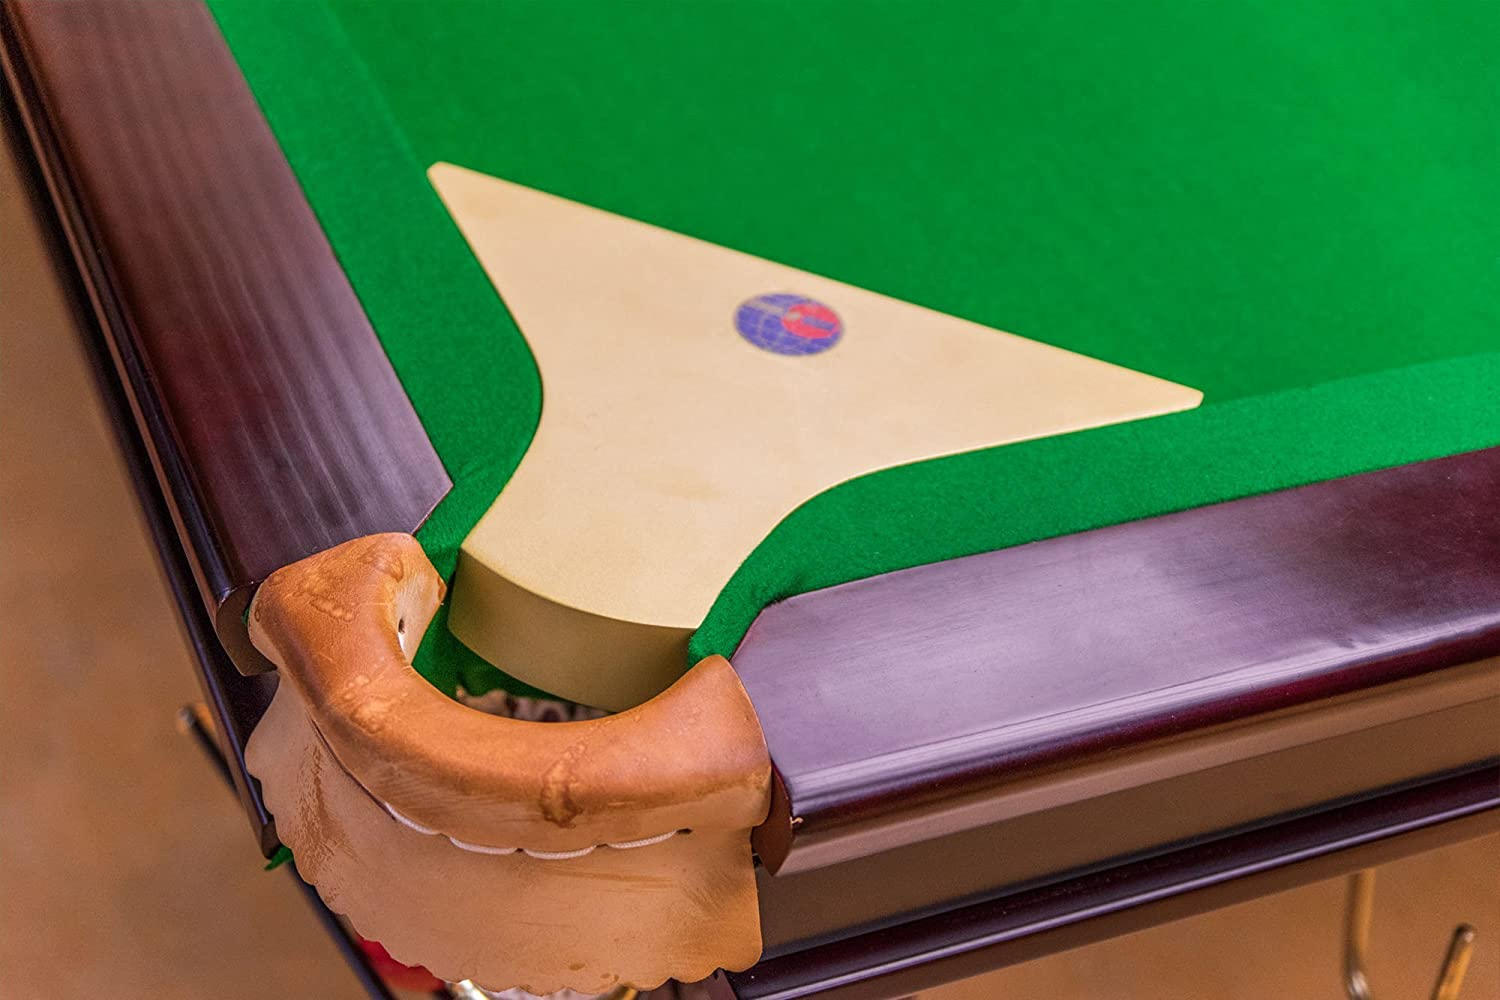 Ibsf Snooker Table Templates 4